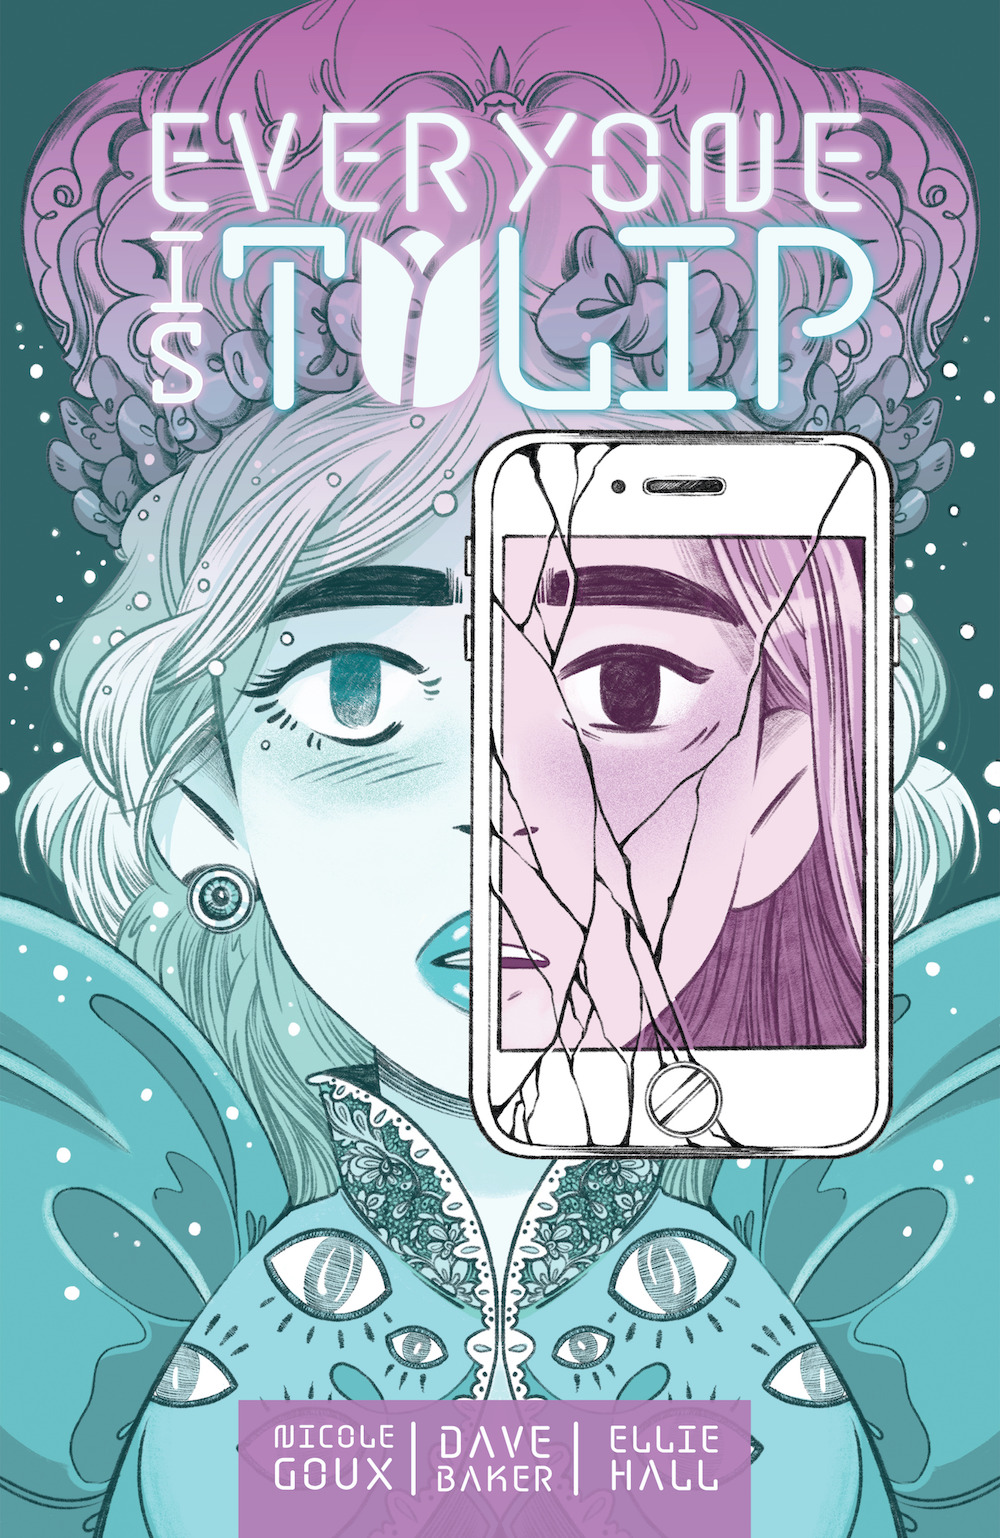 tulipcov Online fame is explored in the Dark Horse graphic novel EVERYONE IS TULIP